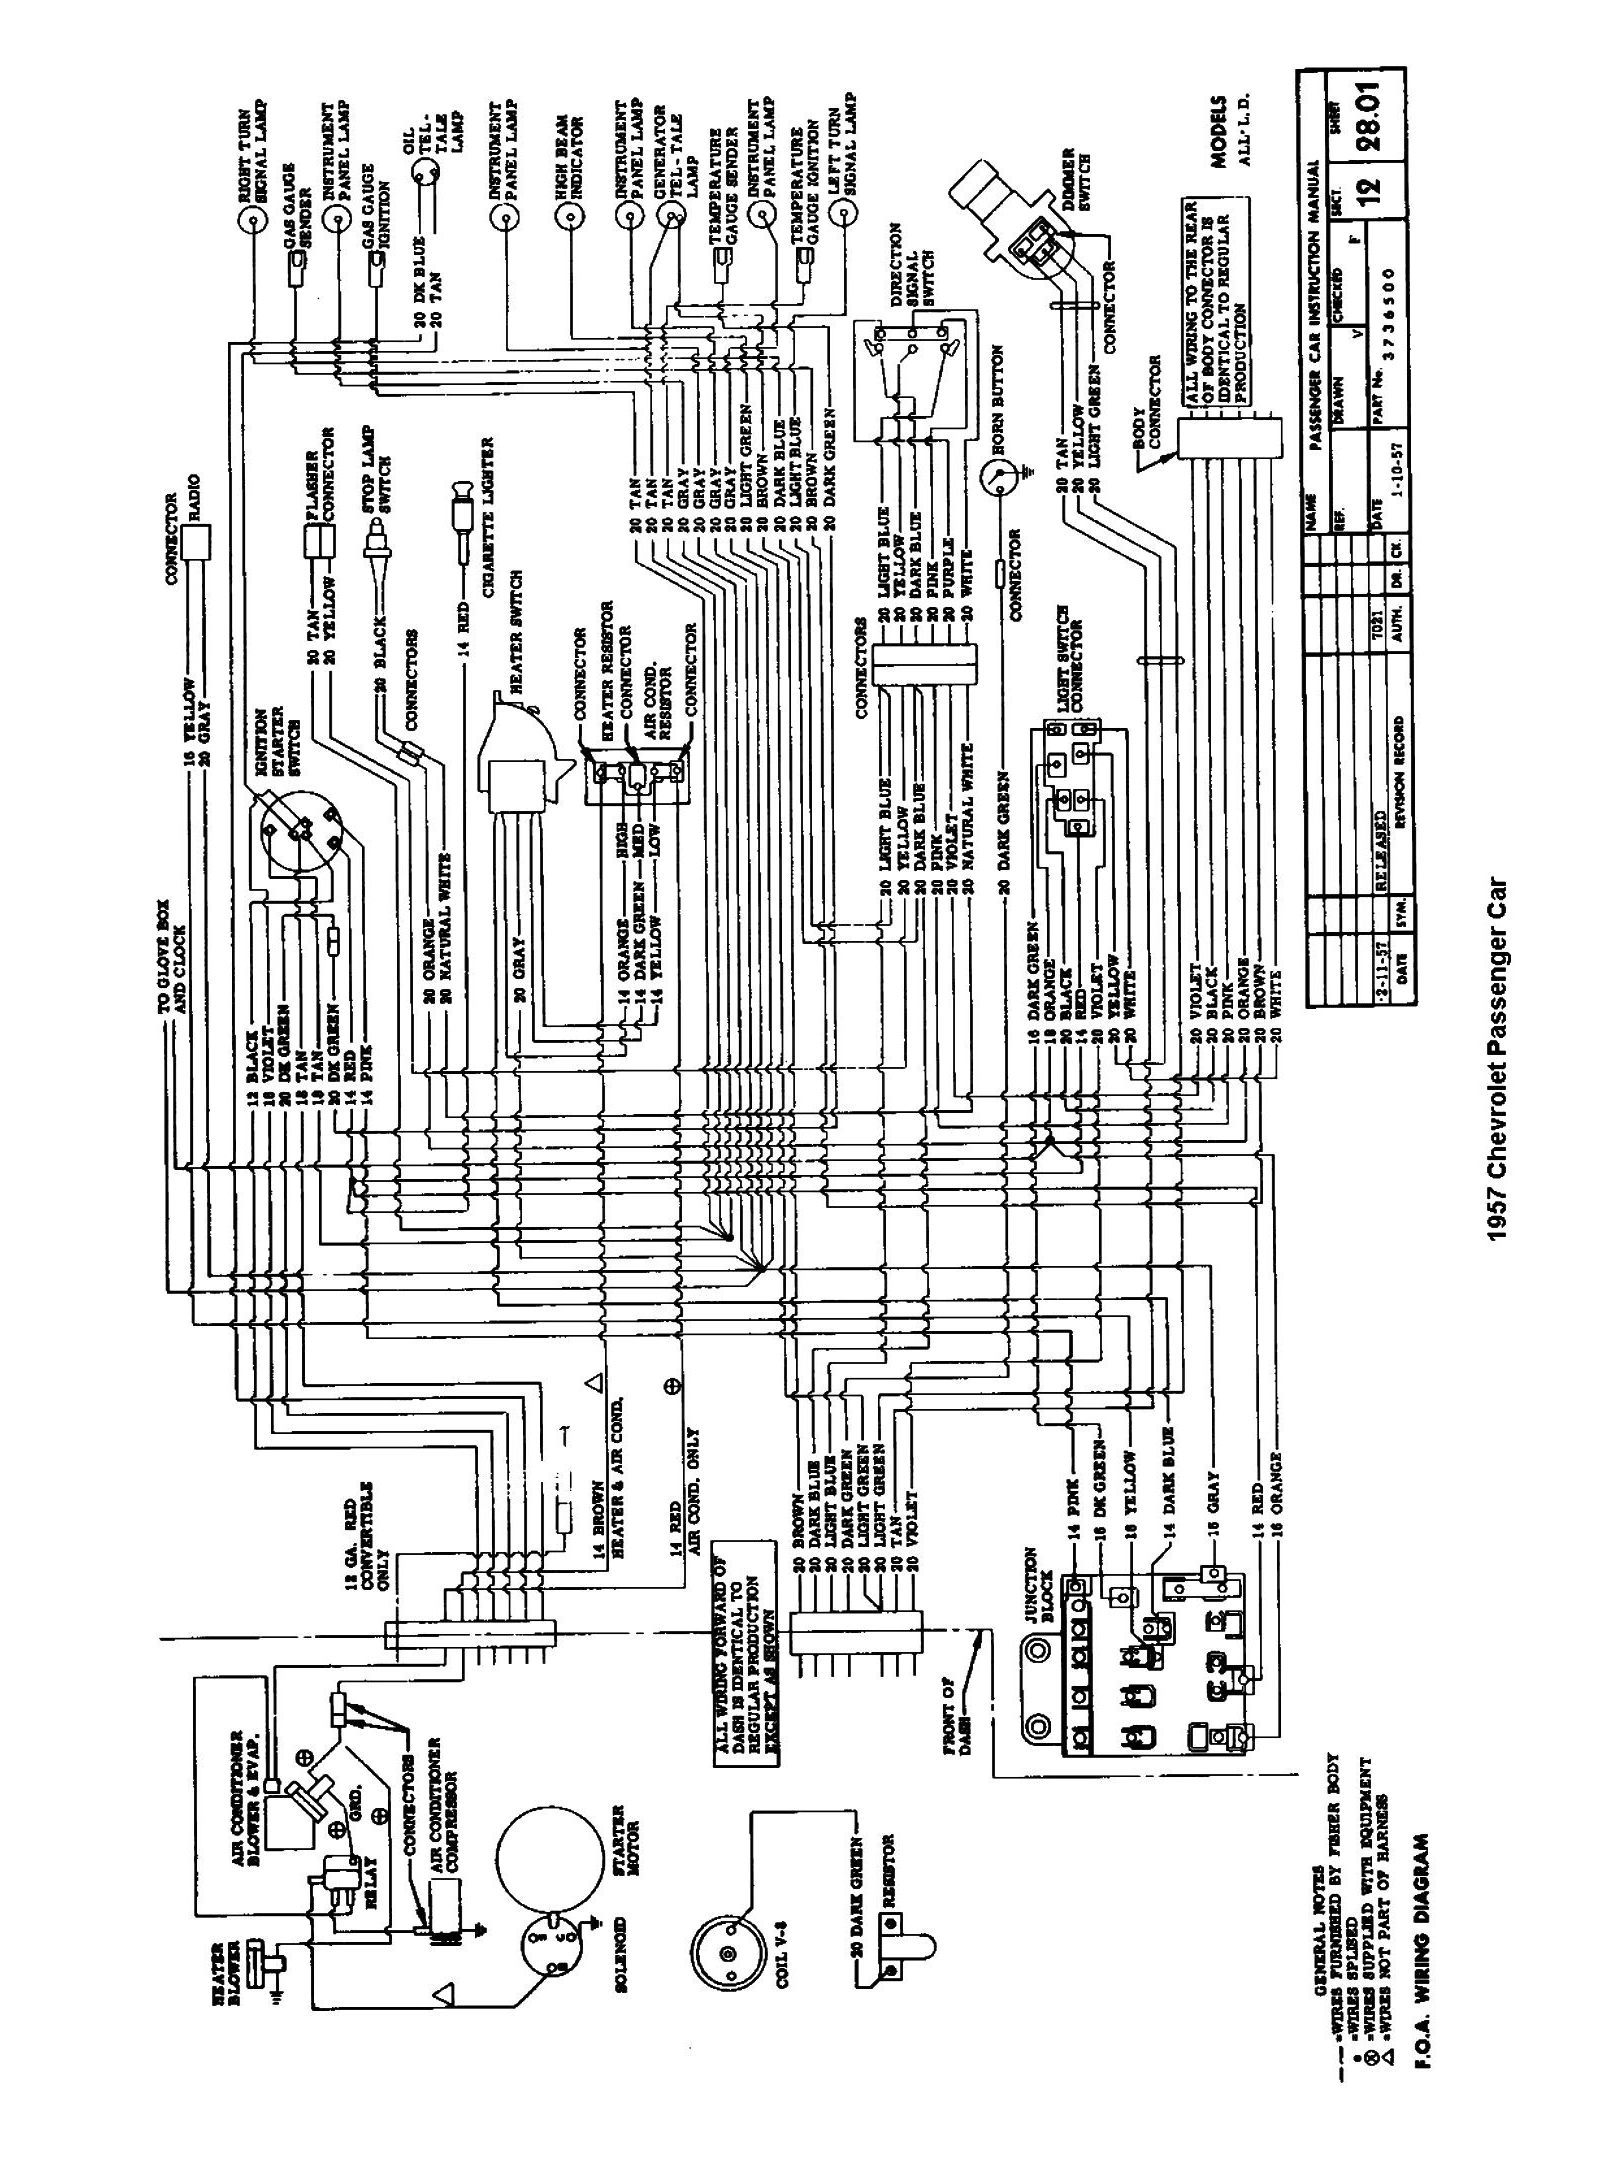 1959 Corvette Wiring Diagram Start Building A Diagrams 74 Nova Chevy Rh Oldcarmanualproject Com 80 79